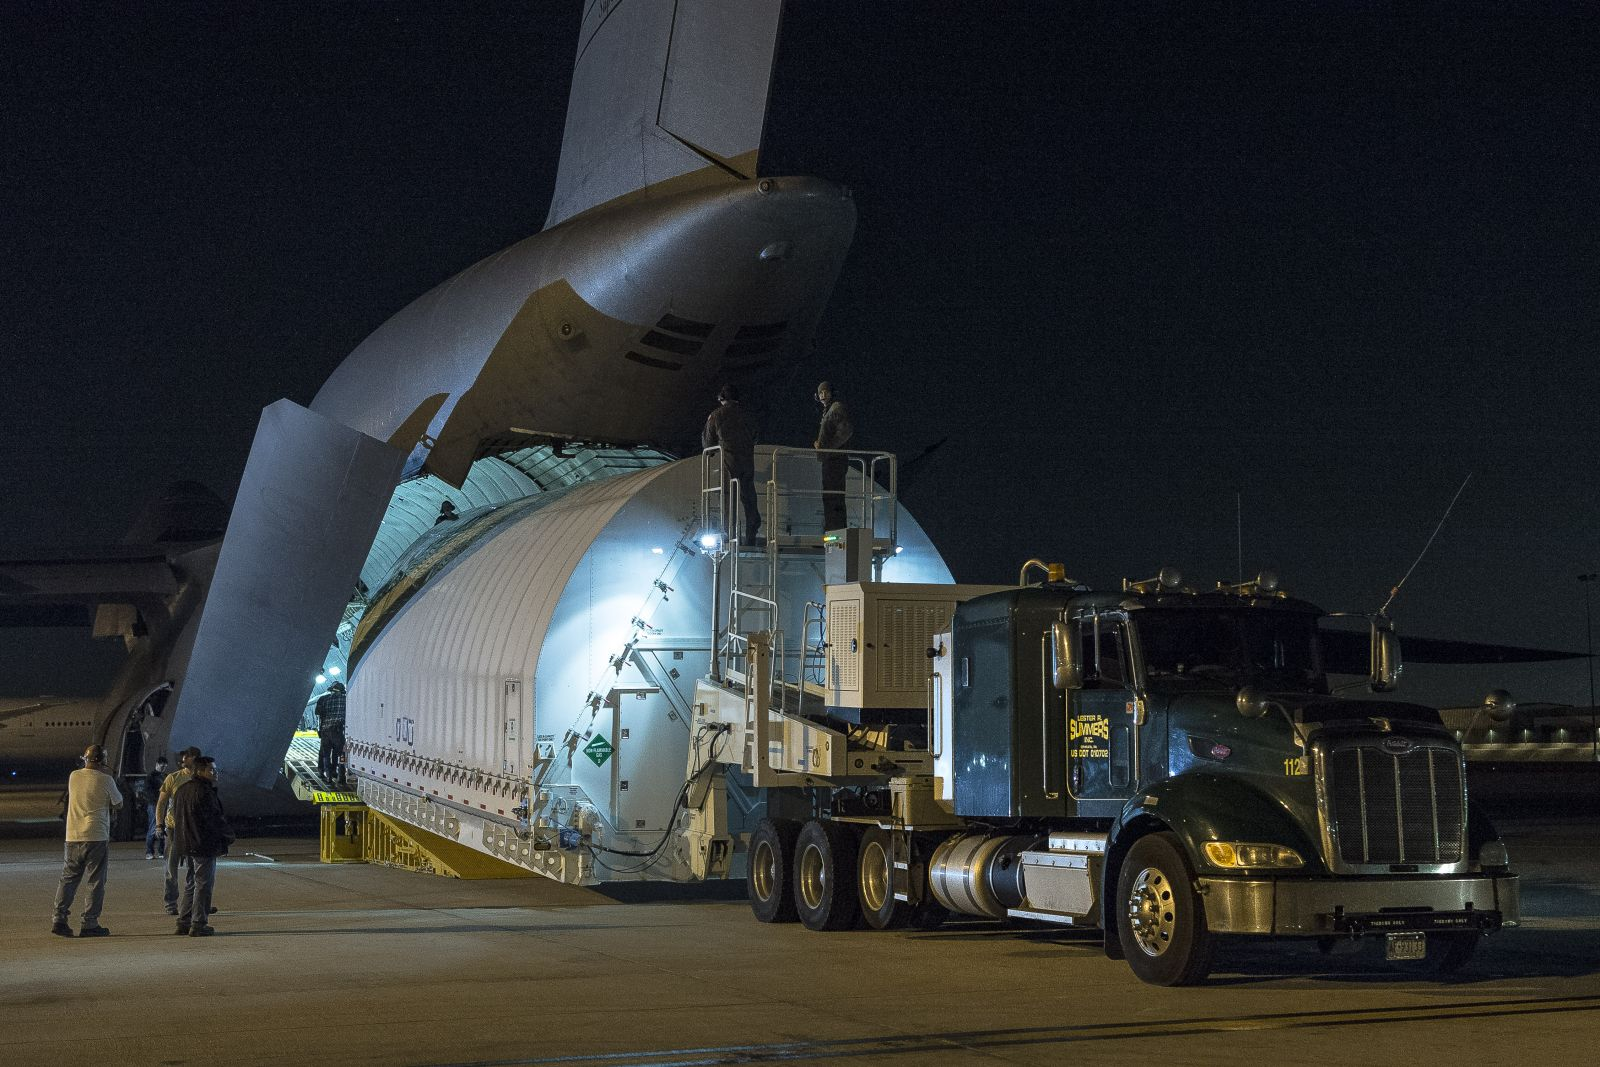 Northrop And Johnson >> Two halves of James Webb Space Telescope come together for ...